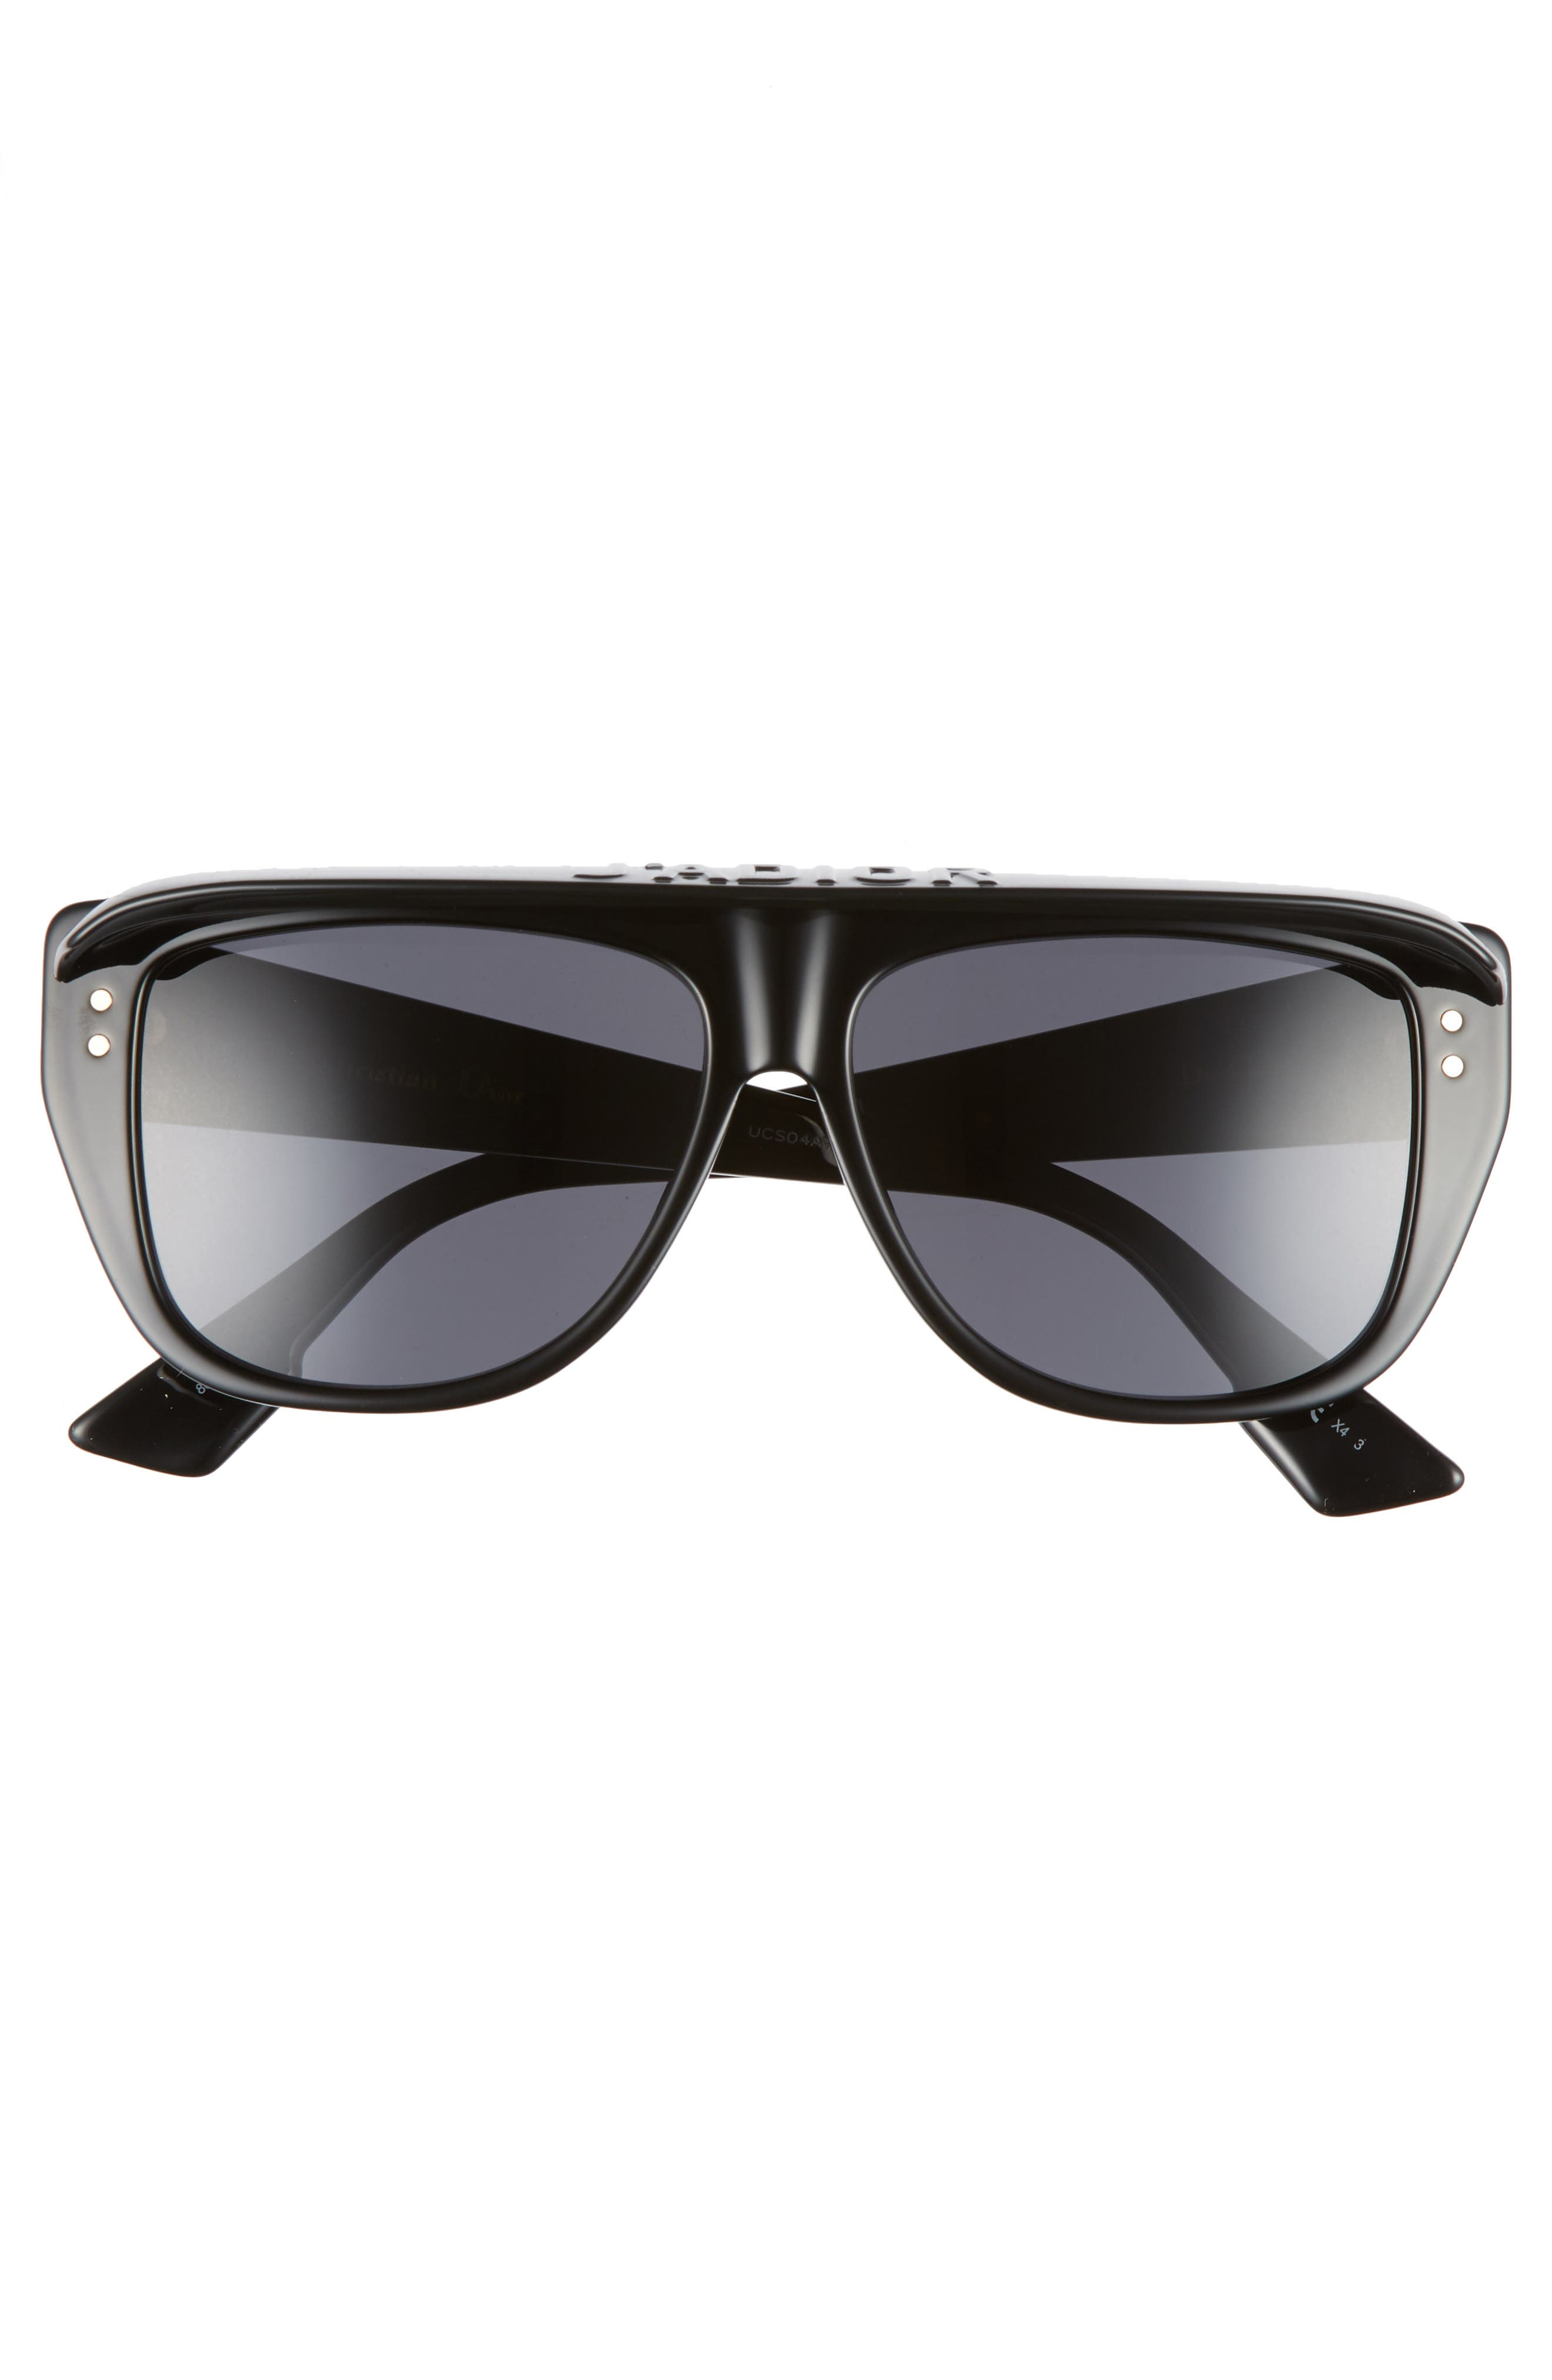 DiorClub2S 56mm Square Sunglasses with Removable Visor,                             Alternate thumbnail 3, color,                             BLACK